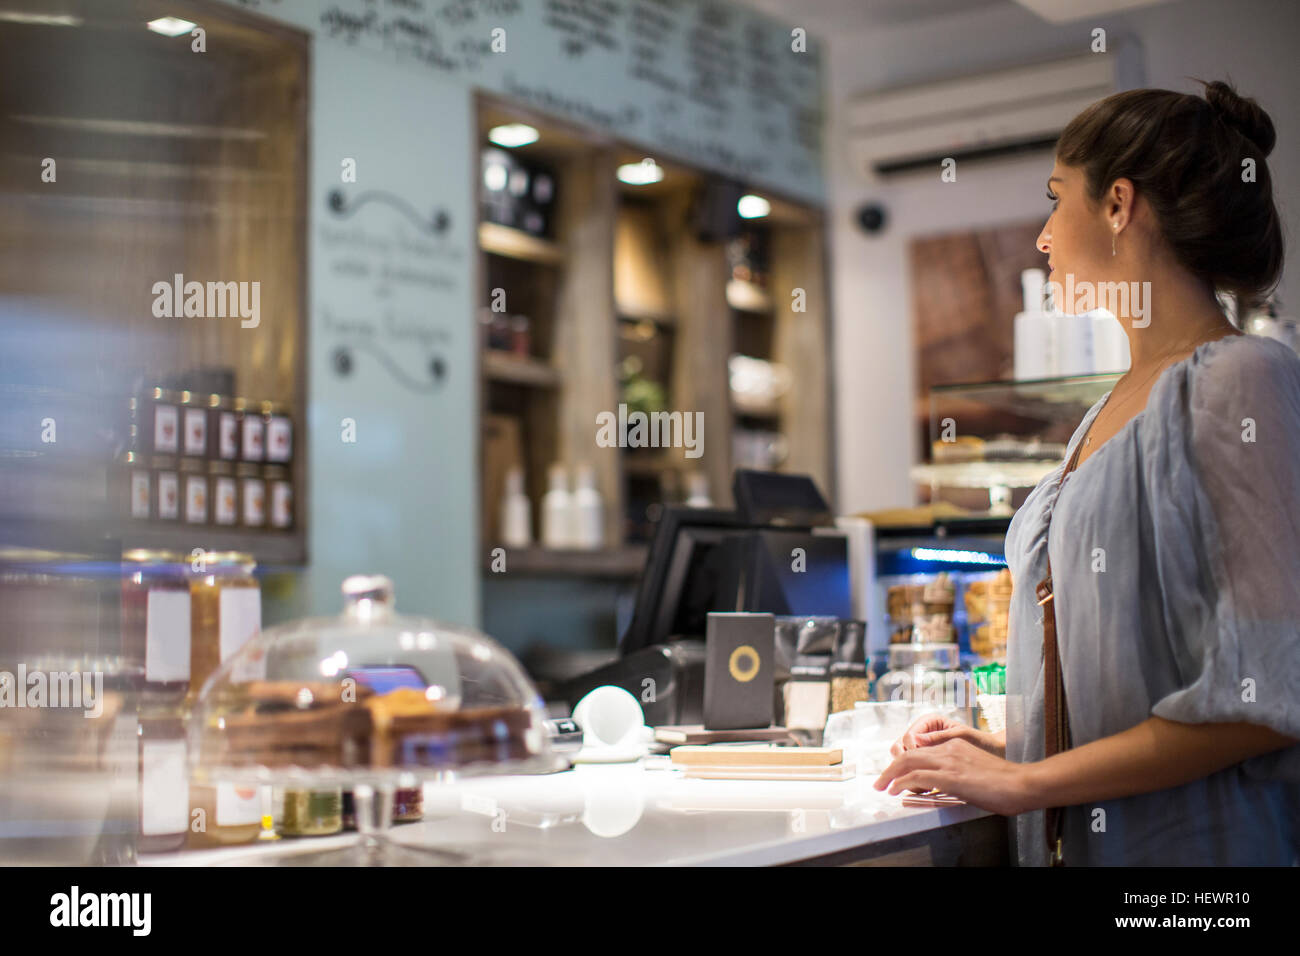 Young woman waiting at cafe counter - Stock Image